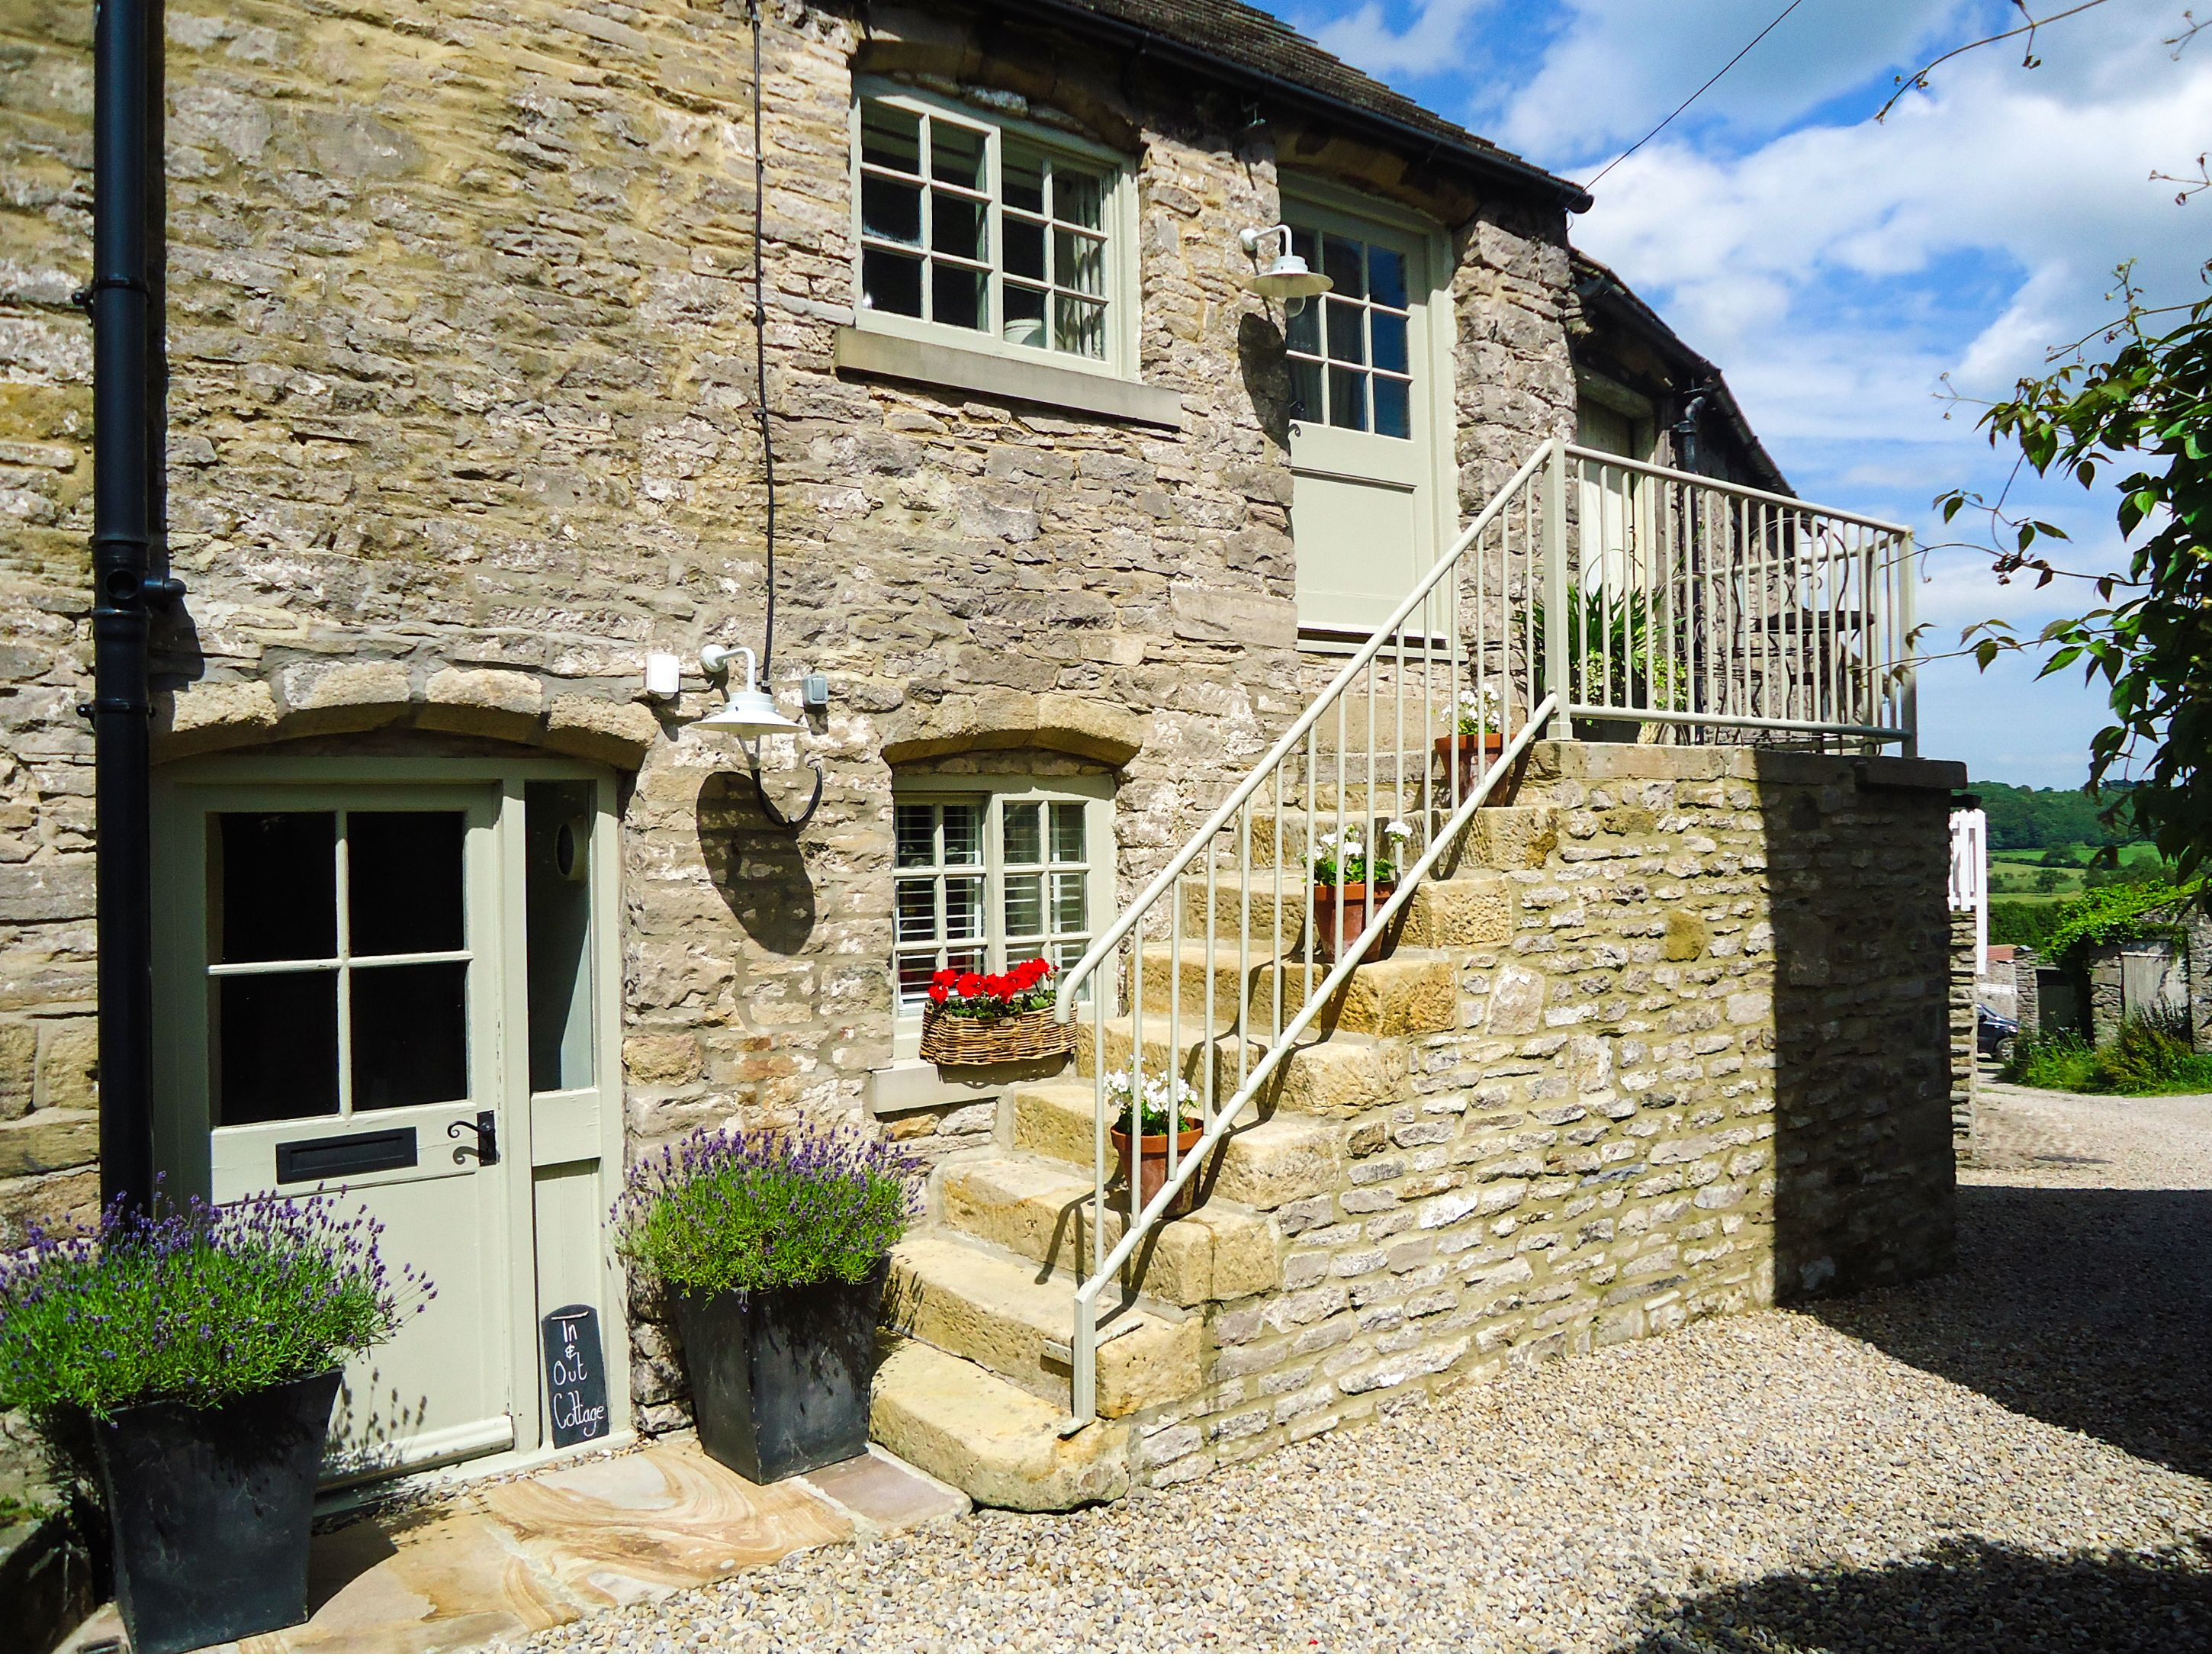 Photo of In & Out Cottage ( Ref 972733 ) sleeps 2 people - Holiday accommodation in Middleham near Leyburn Yorkshire Dales - North Yorkshire